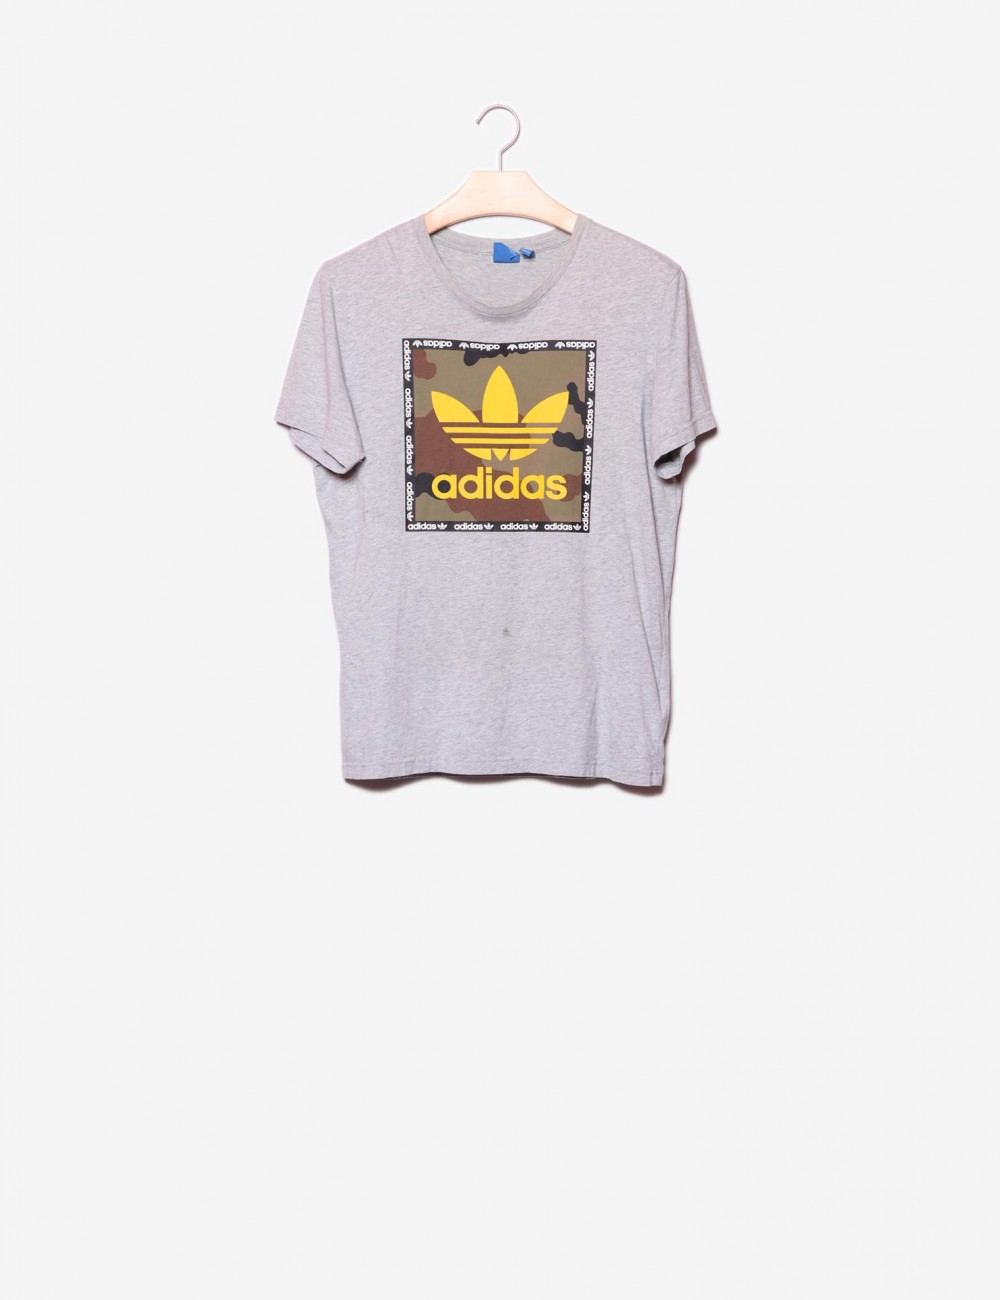 T-shirt maxi stampa-Adidas-frontale.jpg